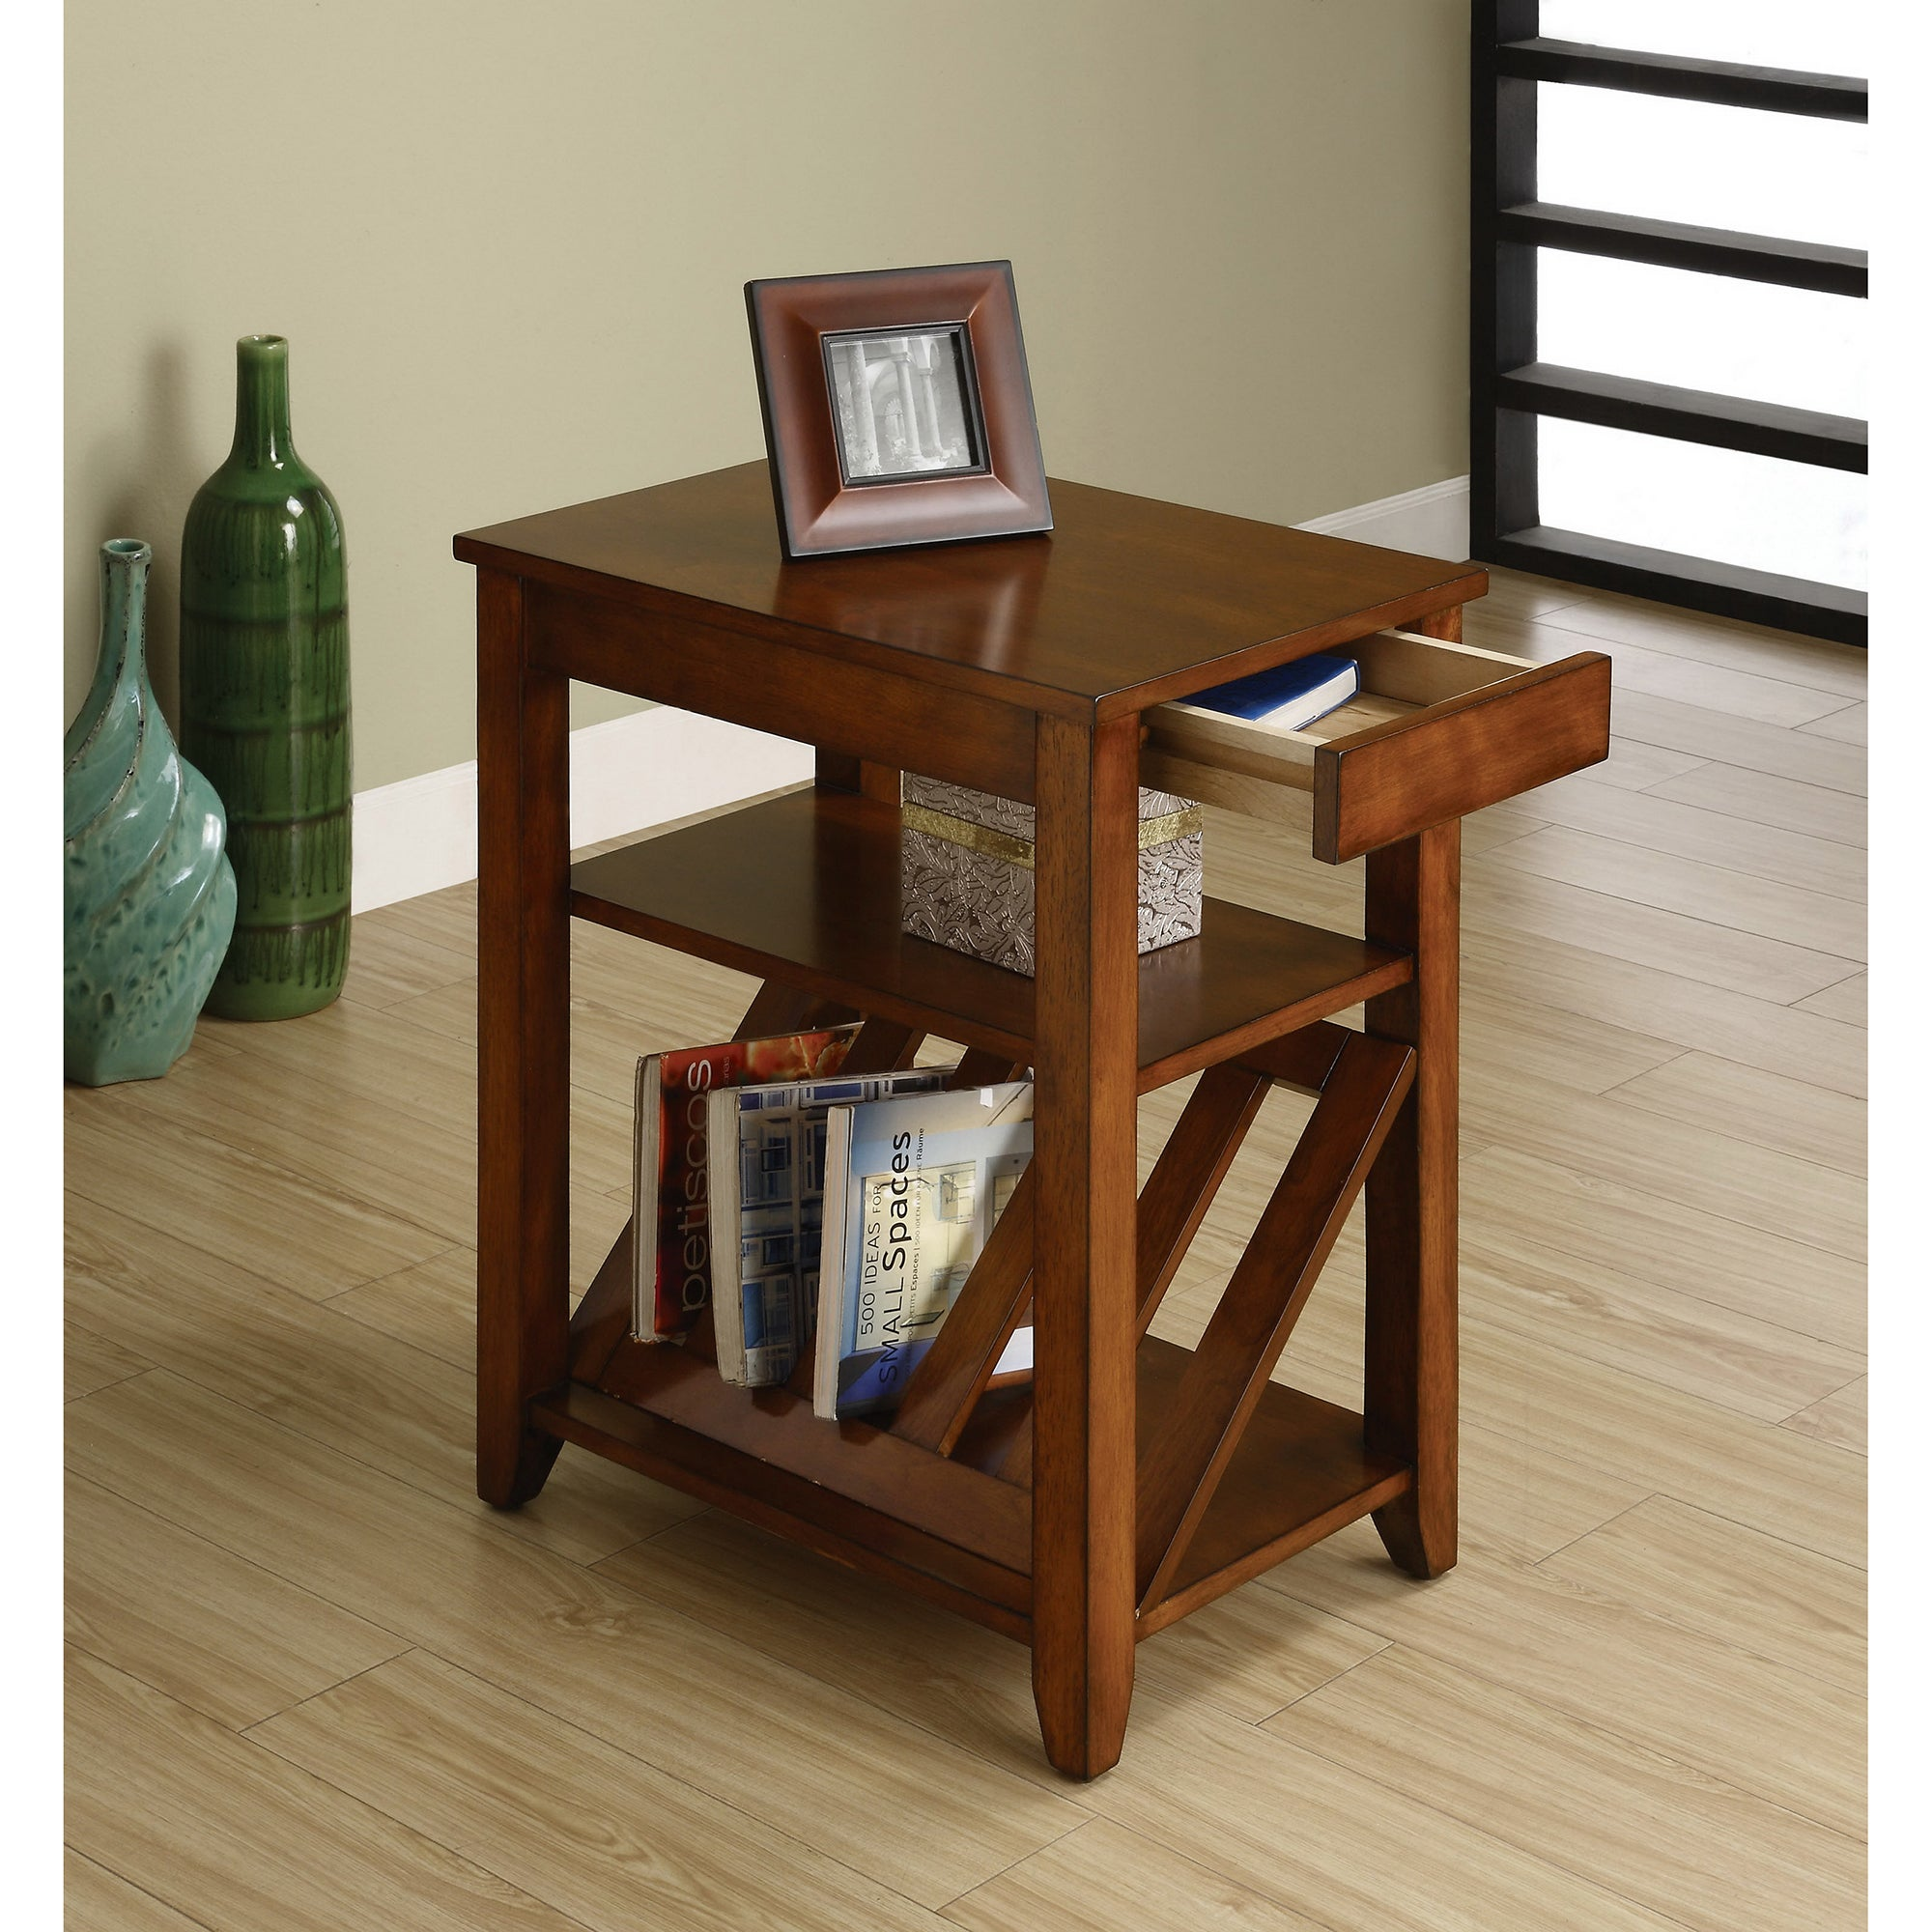 Furniture Of America Antique Oak 1 Drawer Magazine Rack End Table Free Shipping Today 6570087